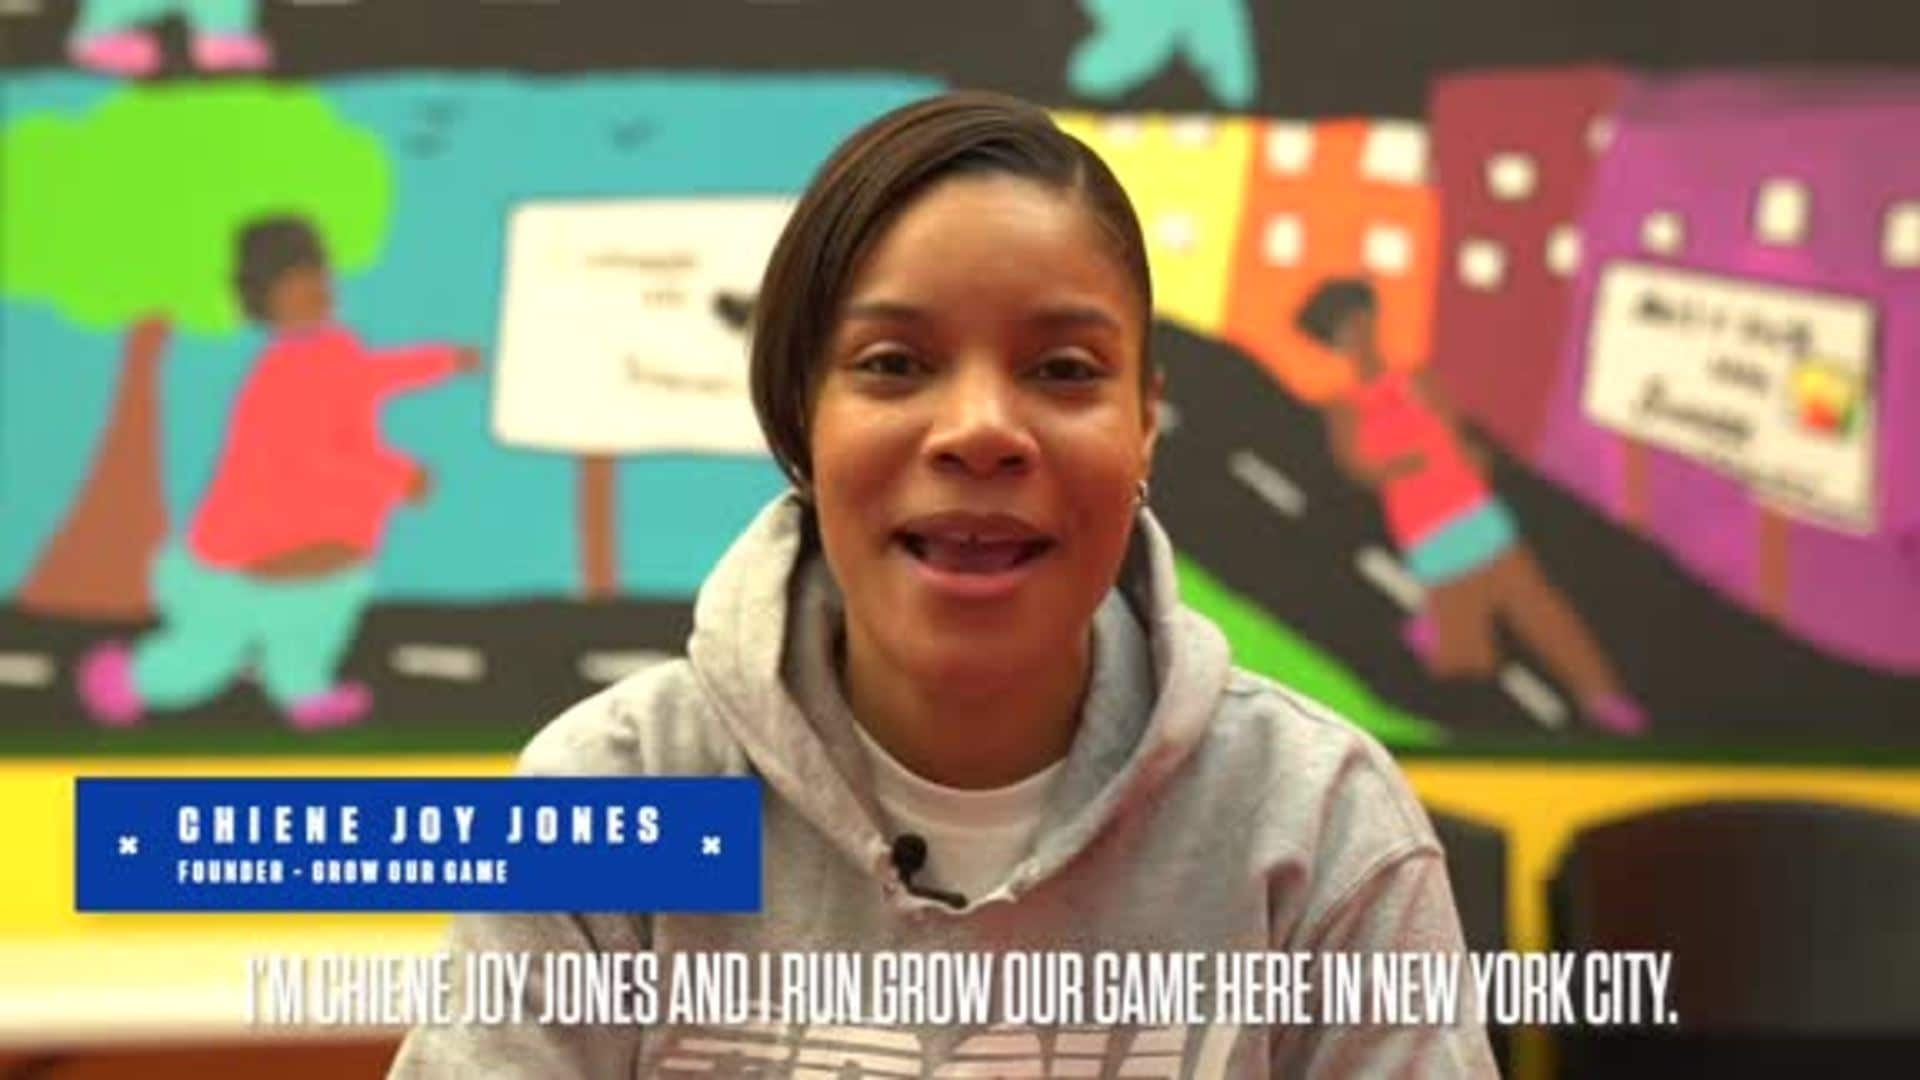 Meet Chiene Joy Jones, Our 2020 HSS Junior Knicks Coach of the Year